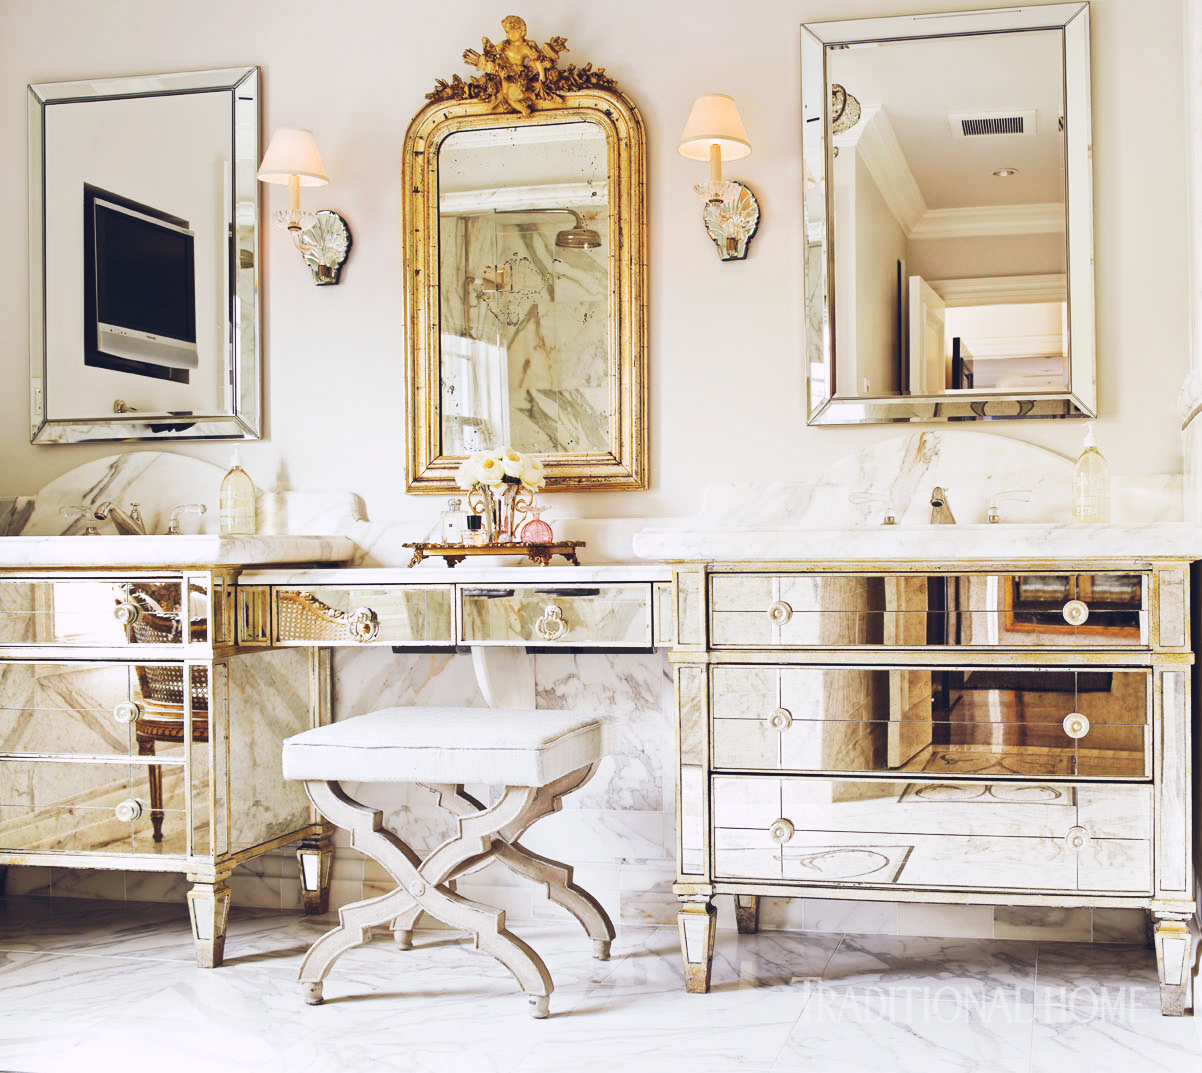 Redux | Décor Inspiration: A Powder Room by Designer Carrie Hayden, Seattle